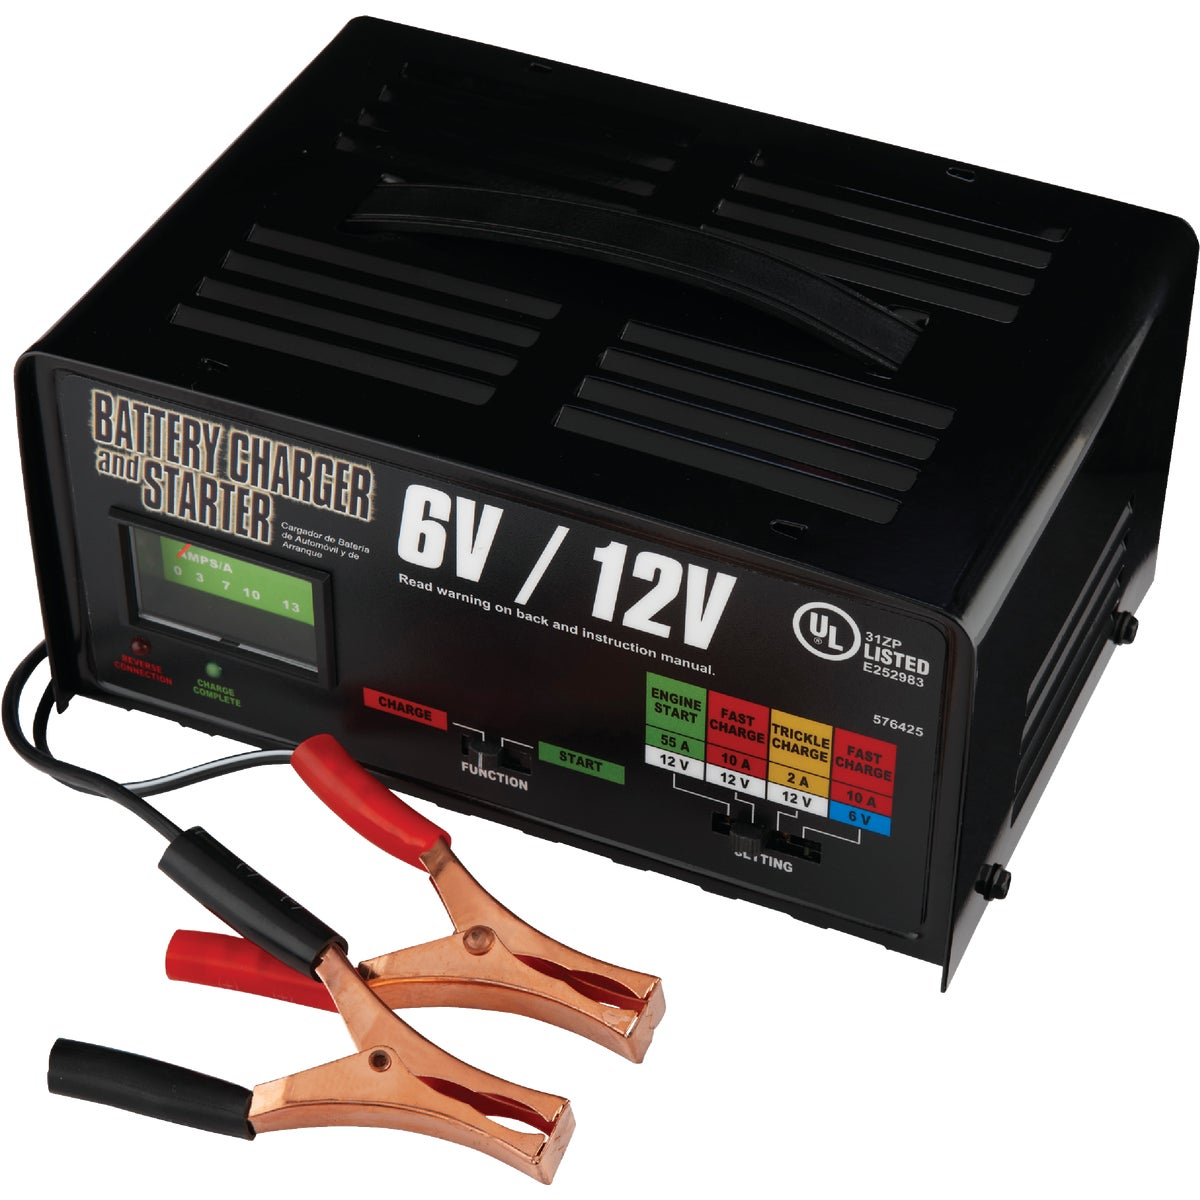 2-10-55 BATTERY CHARGER - 03418 by Do it Best